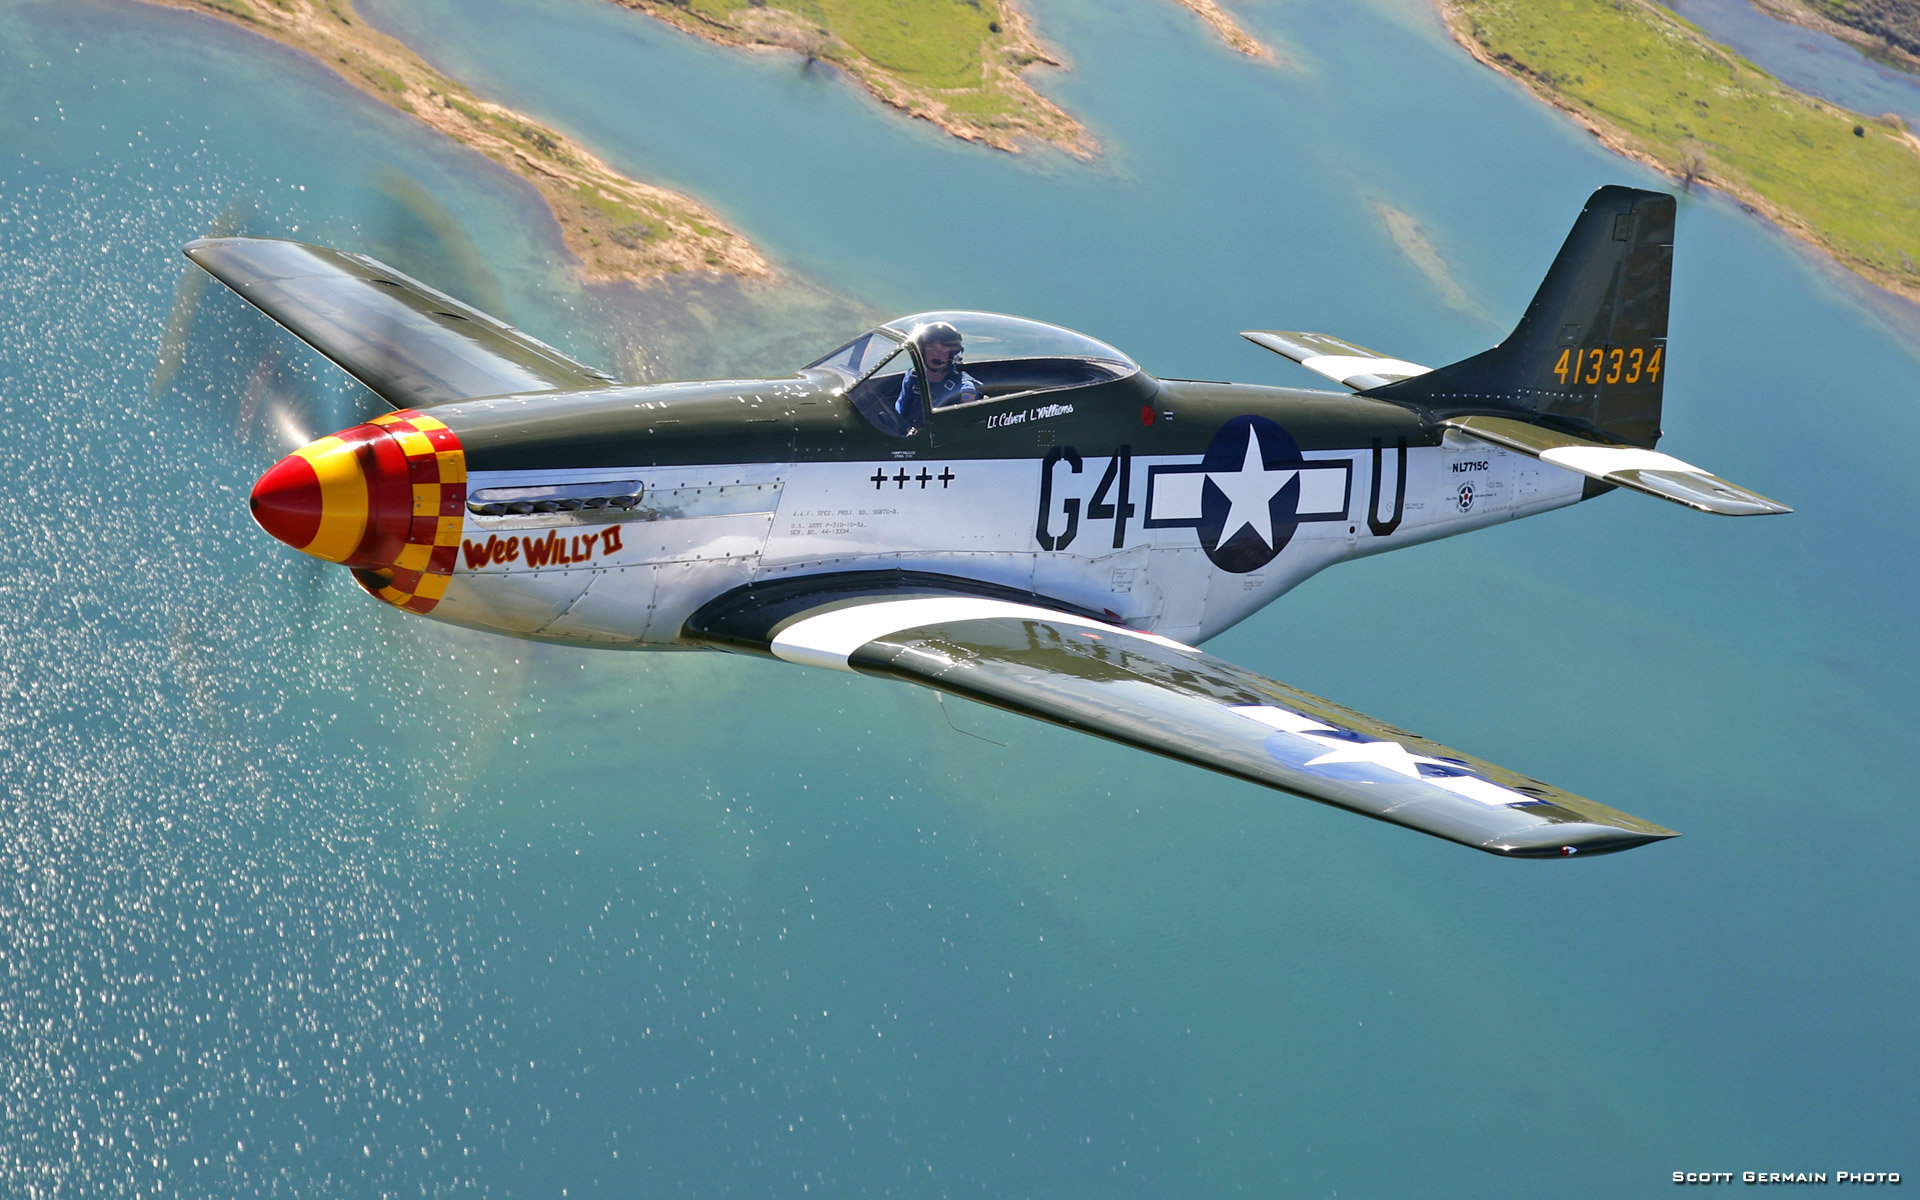 Download Hd 1920x1200 North American P 51 Mustang Desktop